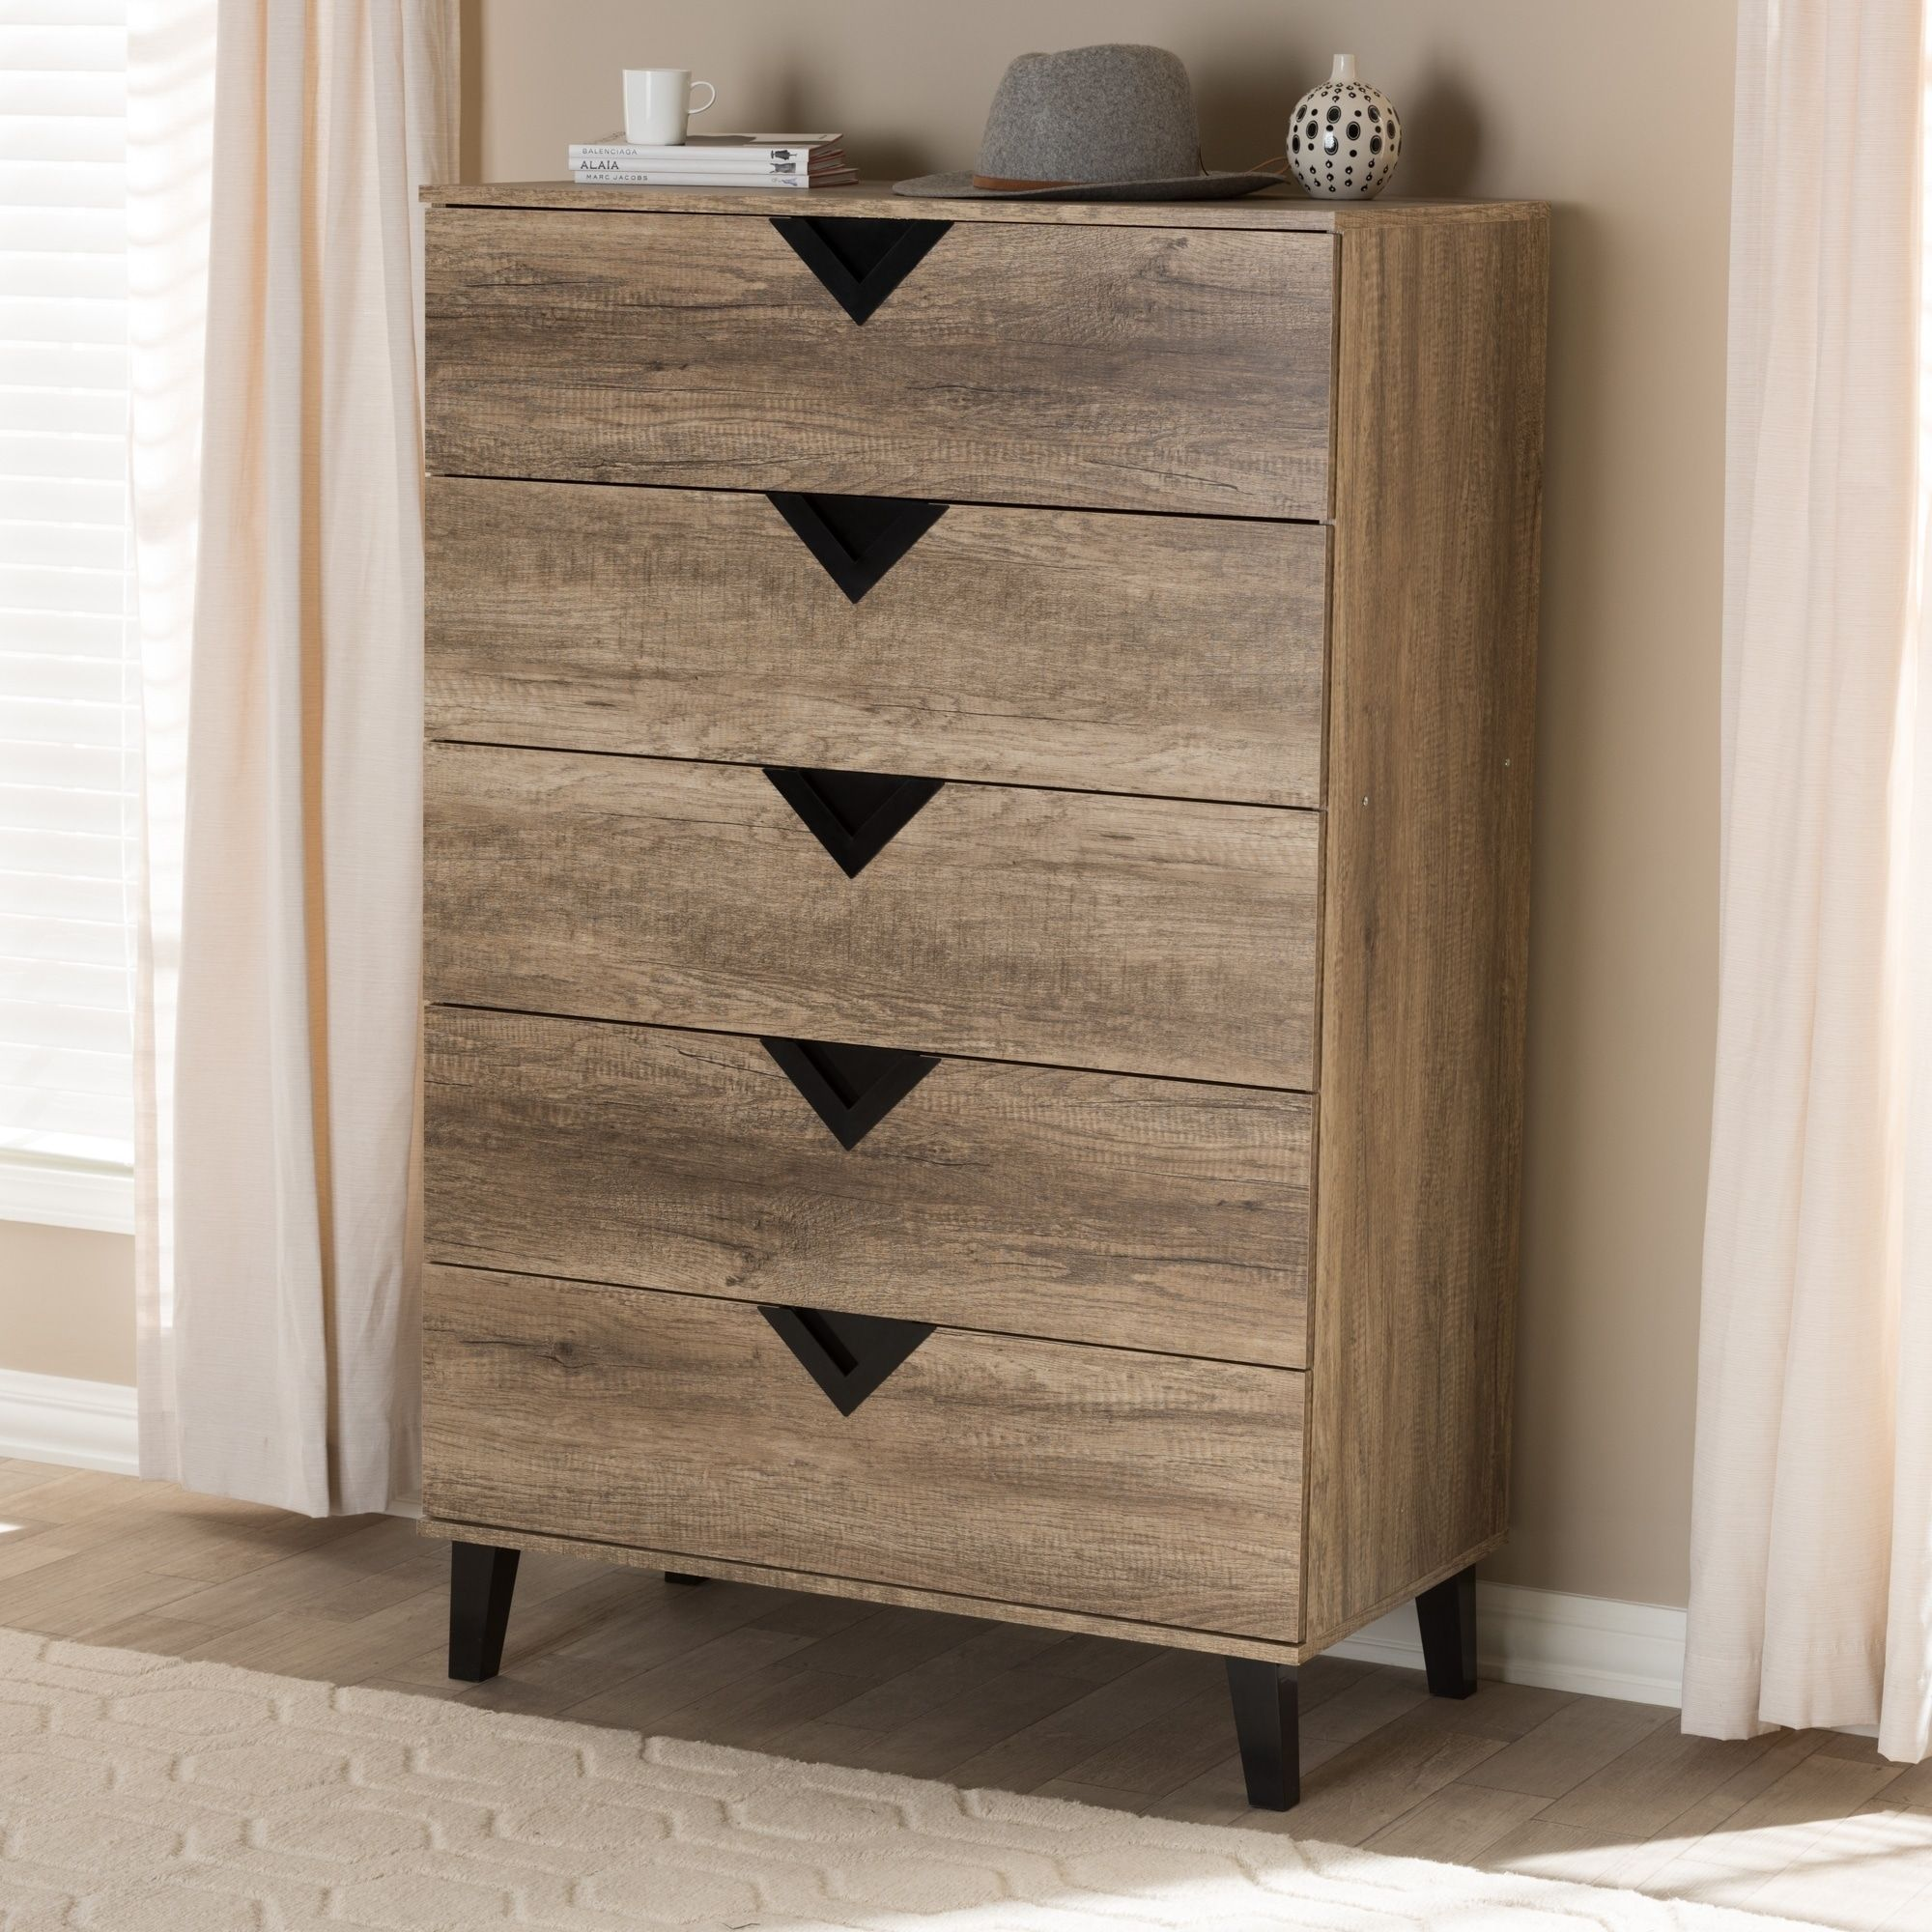 Online Shopping Bedding Furniture Electronics Jewelry Clothing More Wood Bedroom Furniture Furniture Deals Furniture